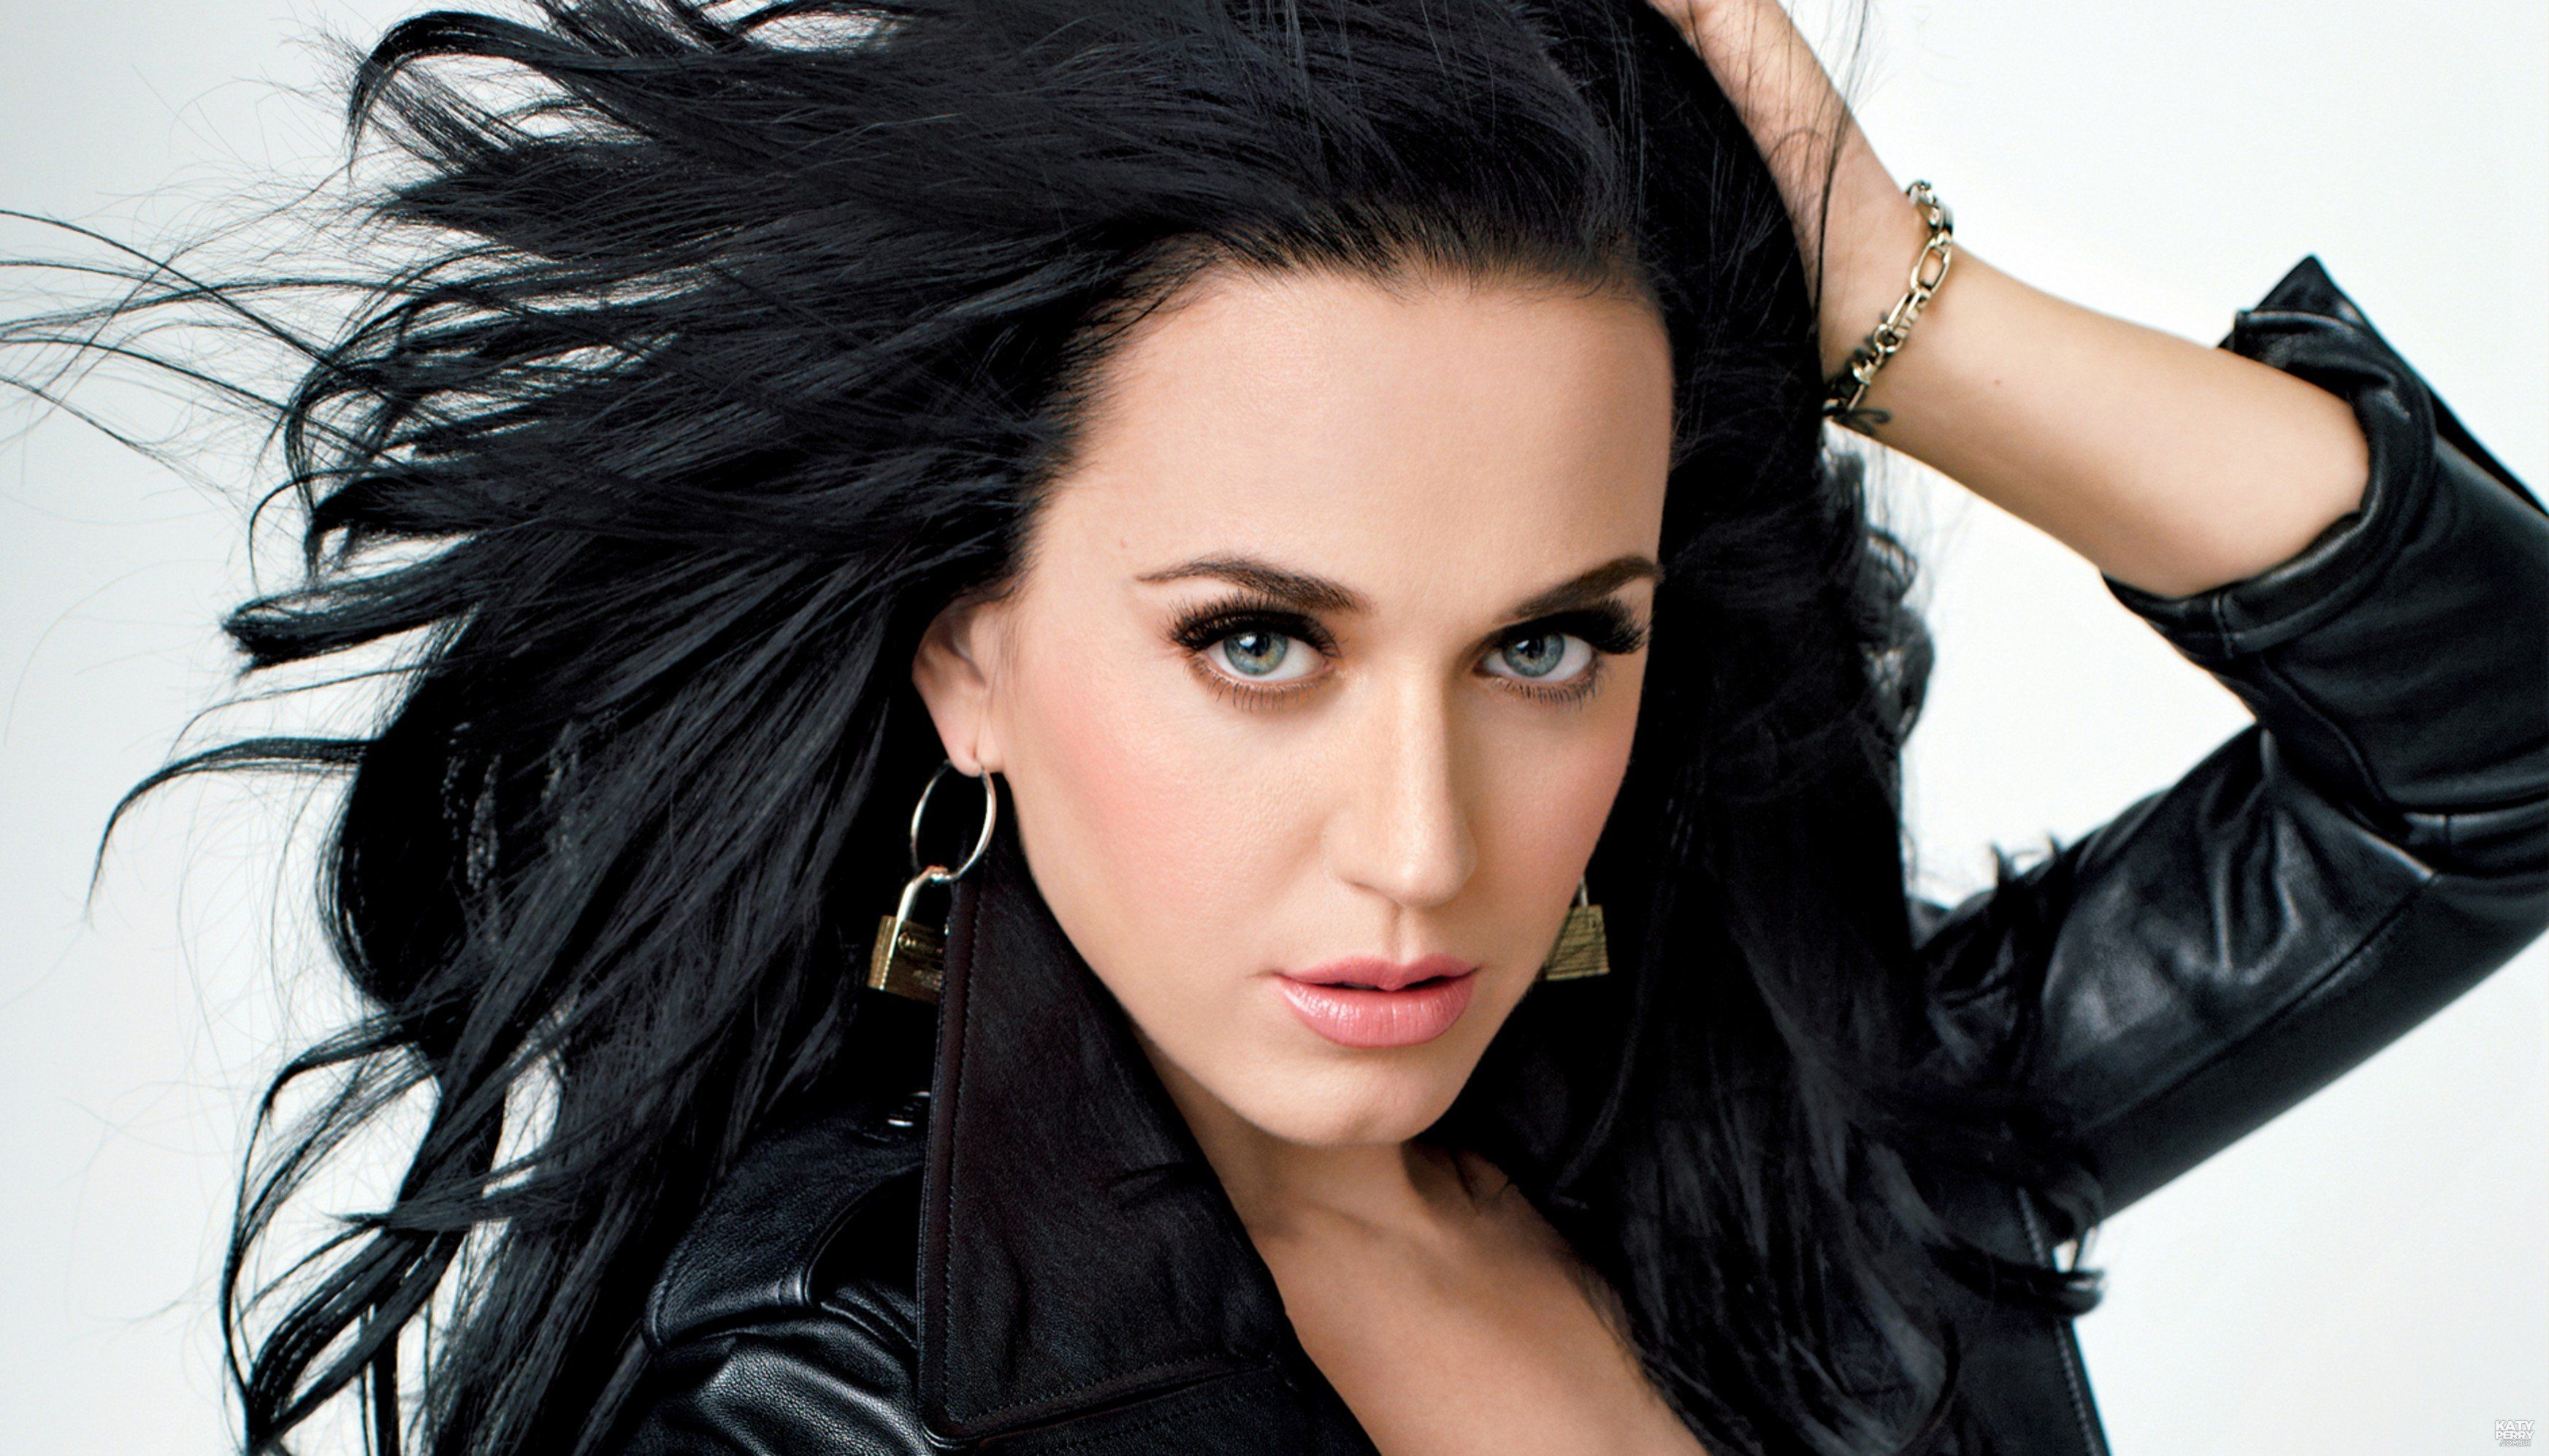 best of Perry interests Katy hobbies and